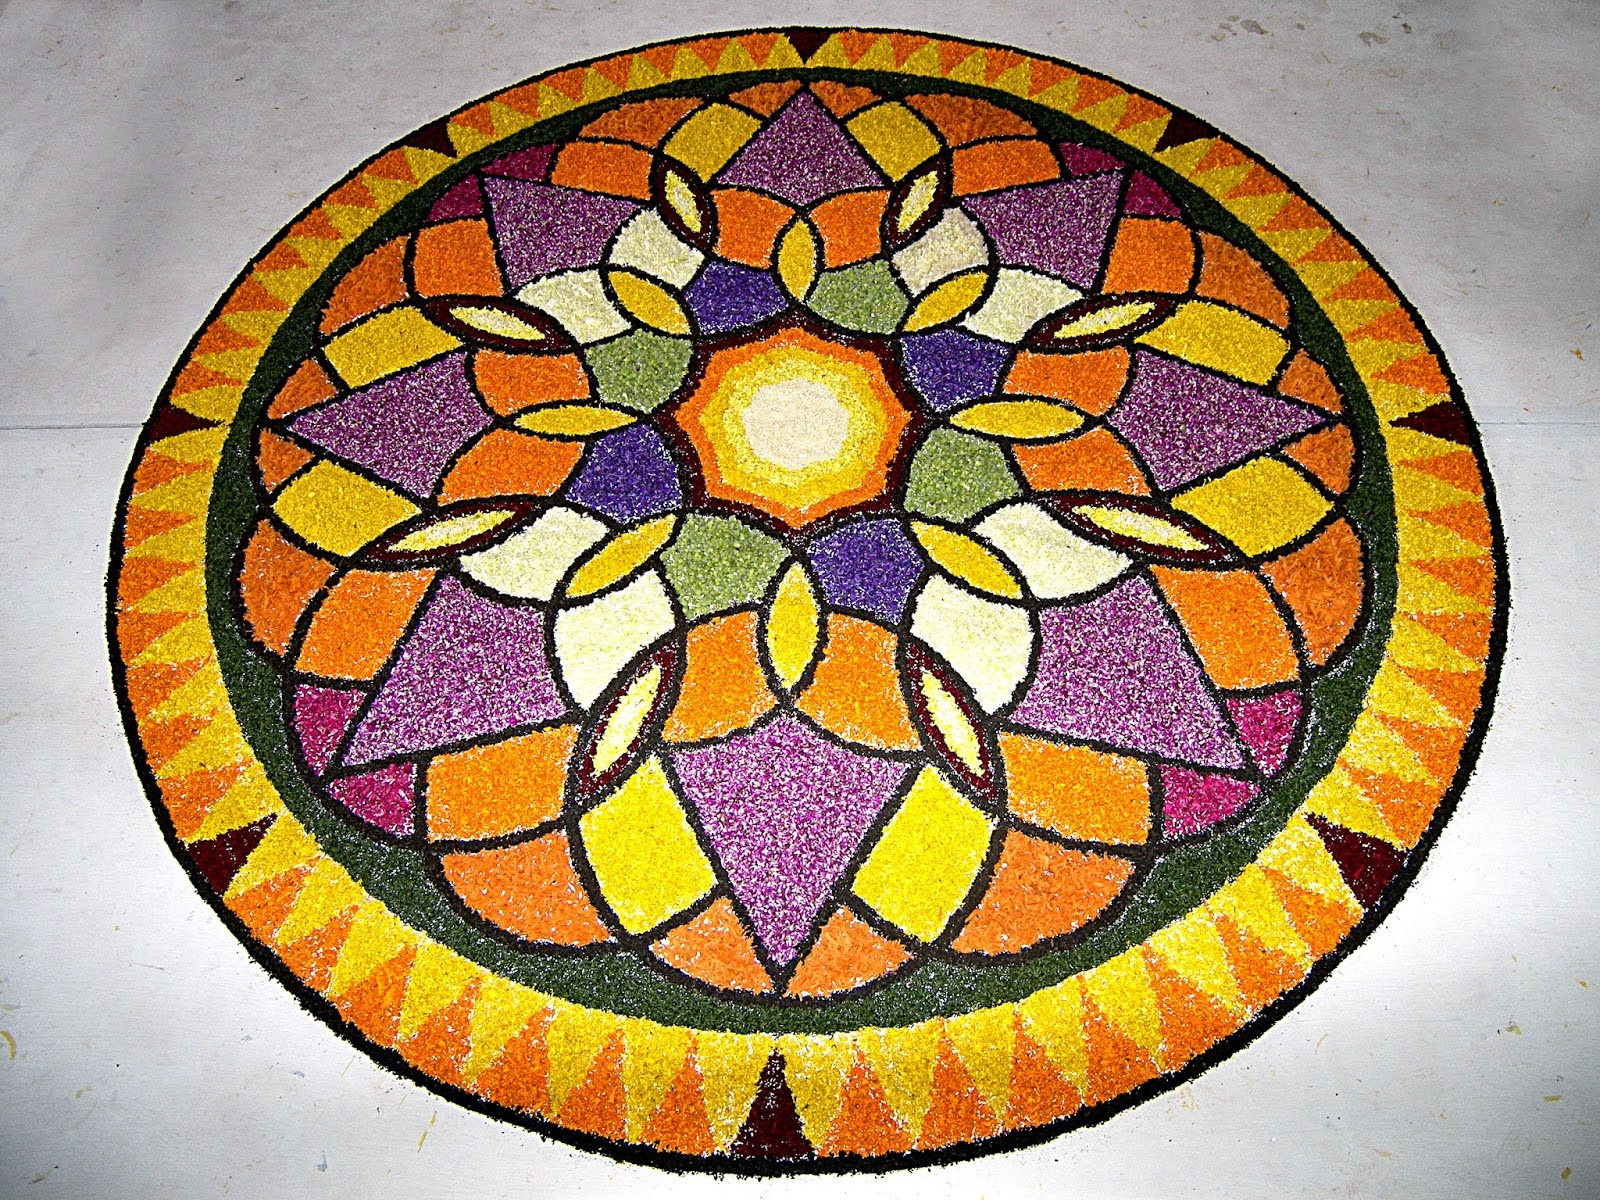 Onam 2015 pookalam and floral design concept